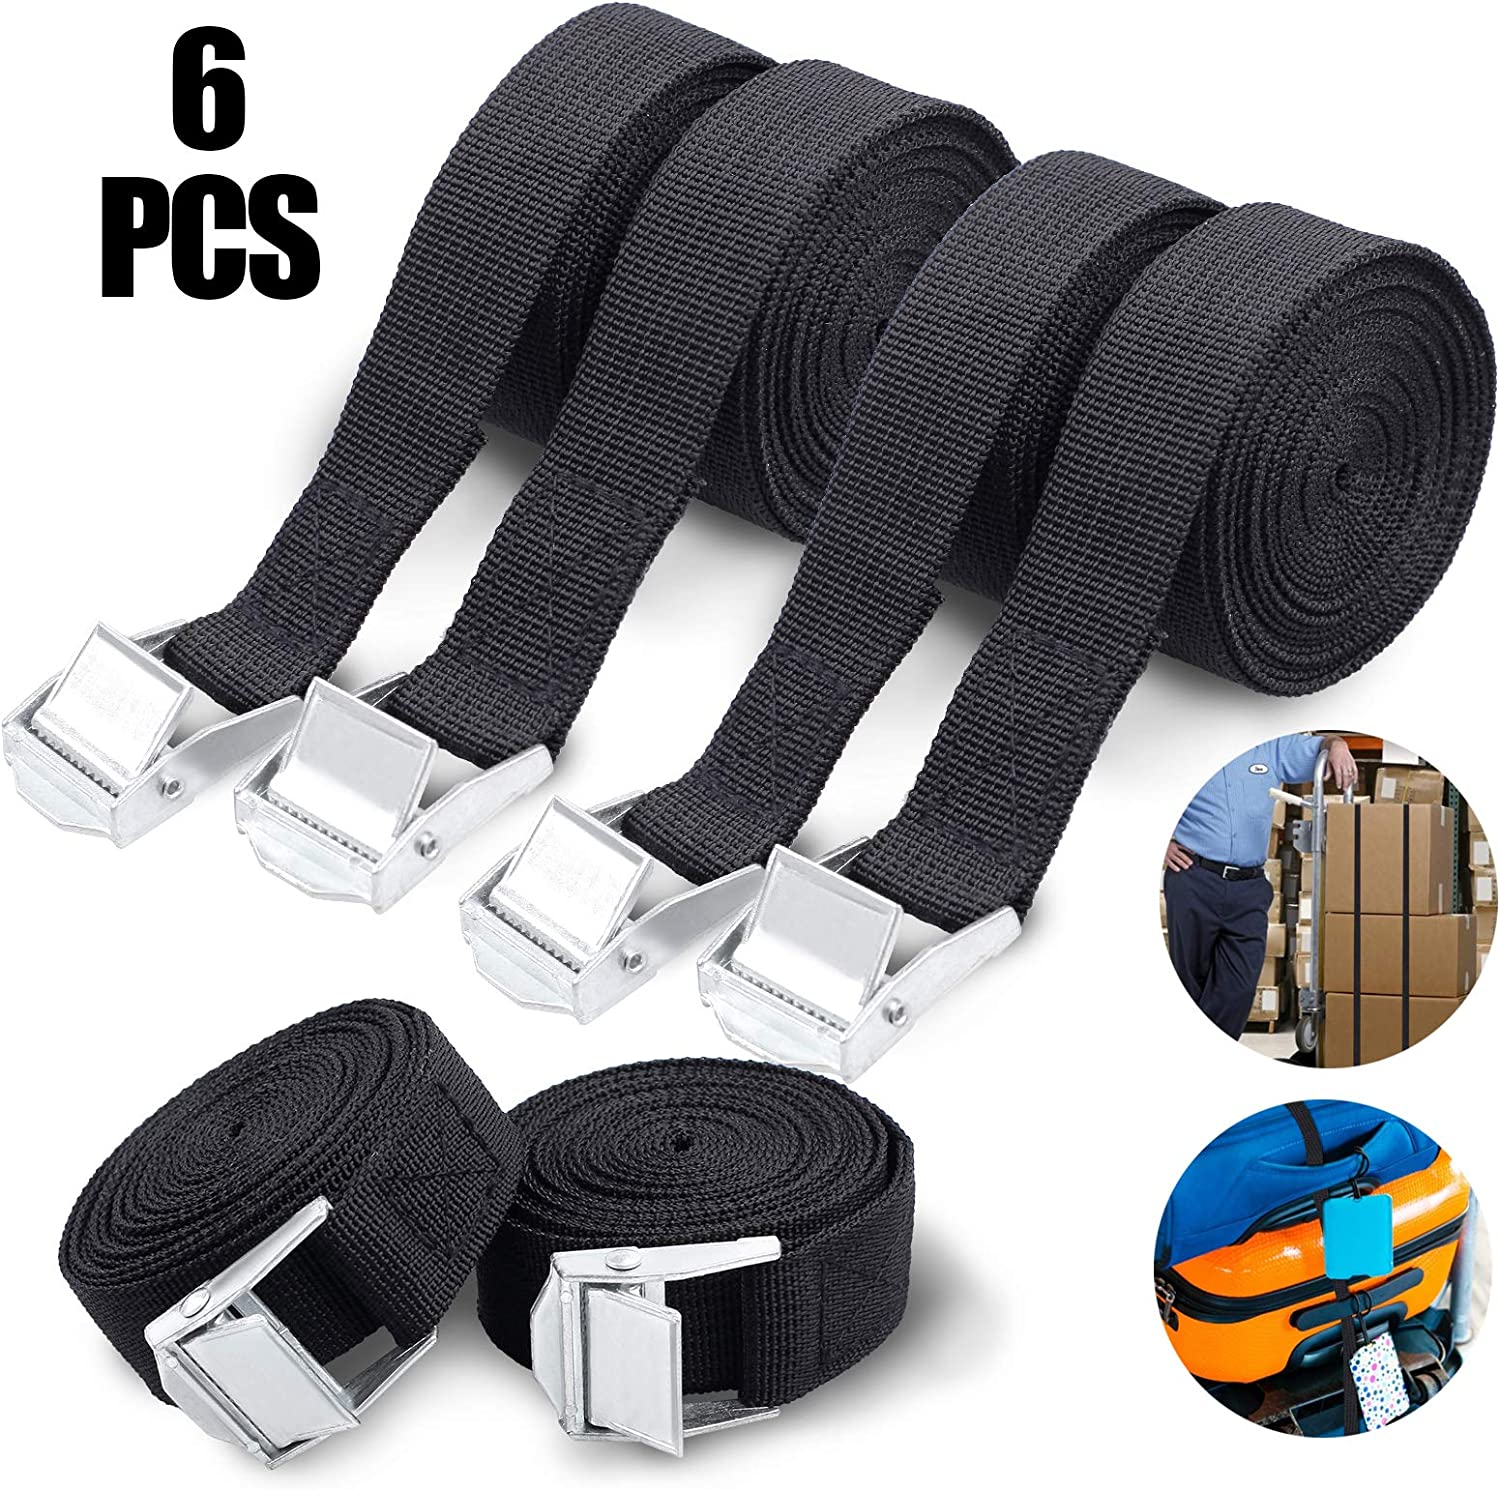 for Motorcycle Trailer Truck Cargo SOOKIN Tie Down Straps 6PCS Lashing Straps Tensioning Belts Ratchet Straps Cargo Straps Tension Straps Adjustable with Clamp Lock